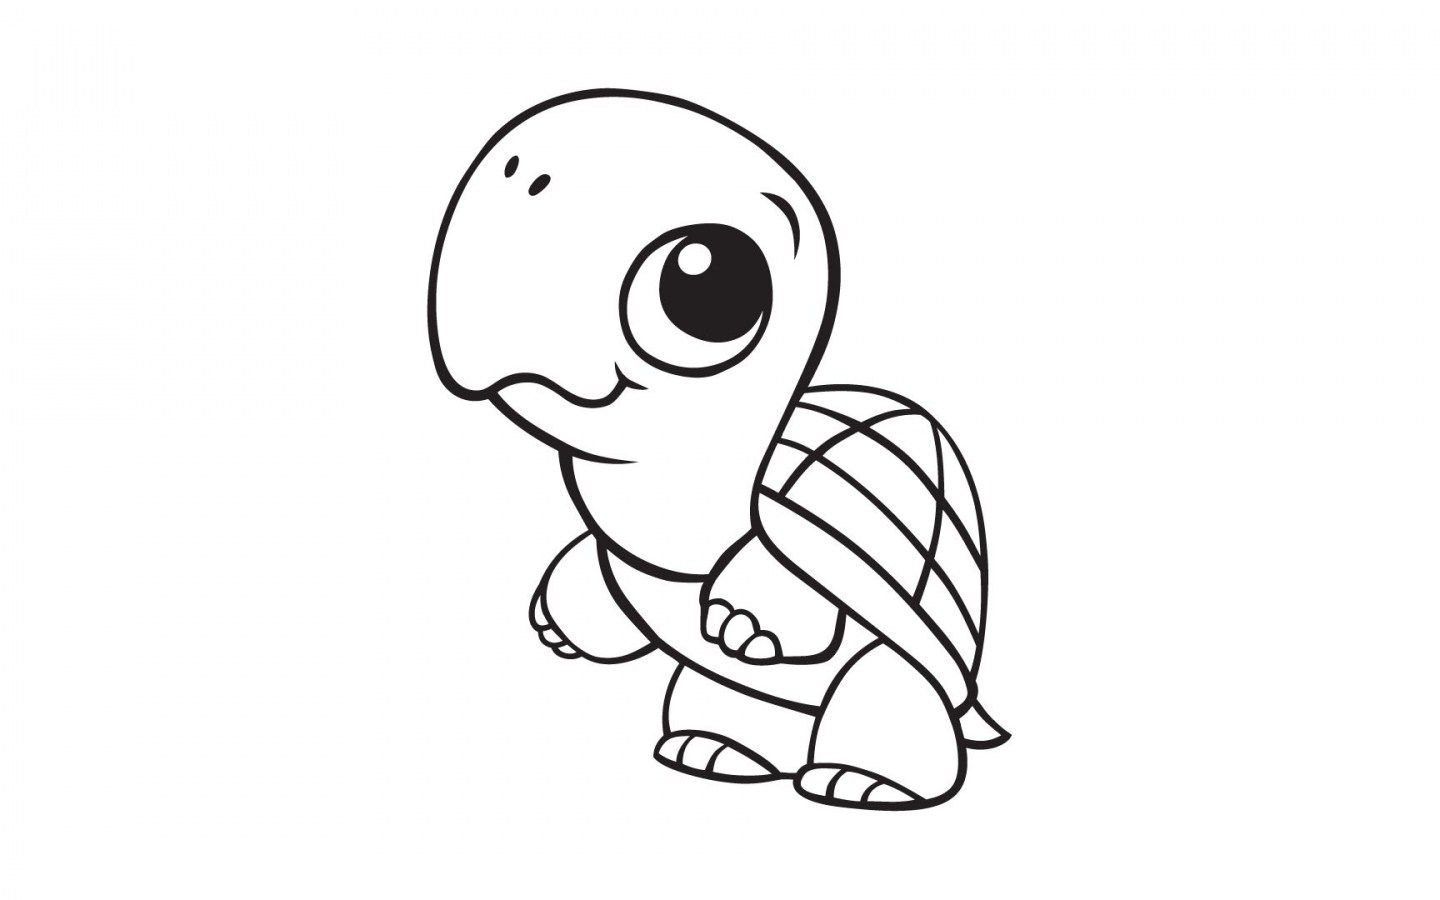 animal coloring pages you can download and print cute baby animal ...